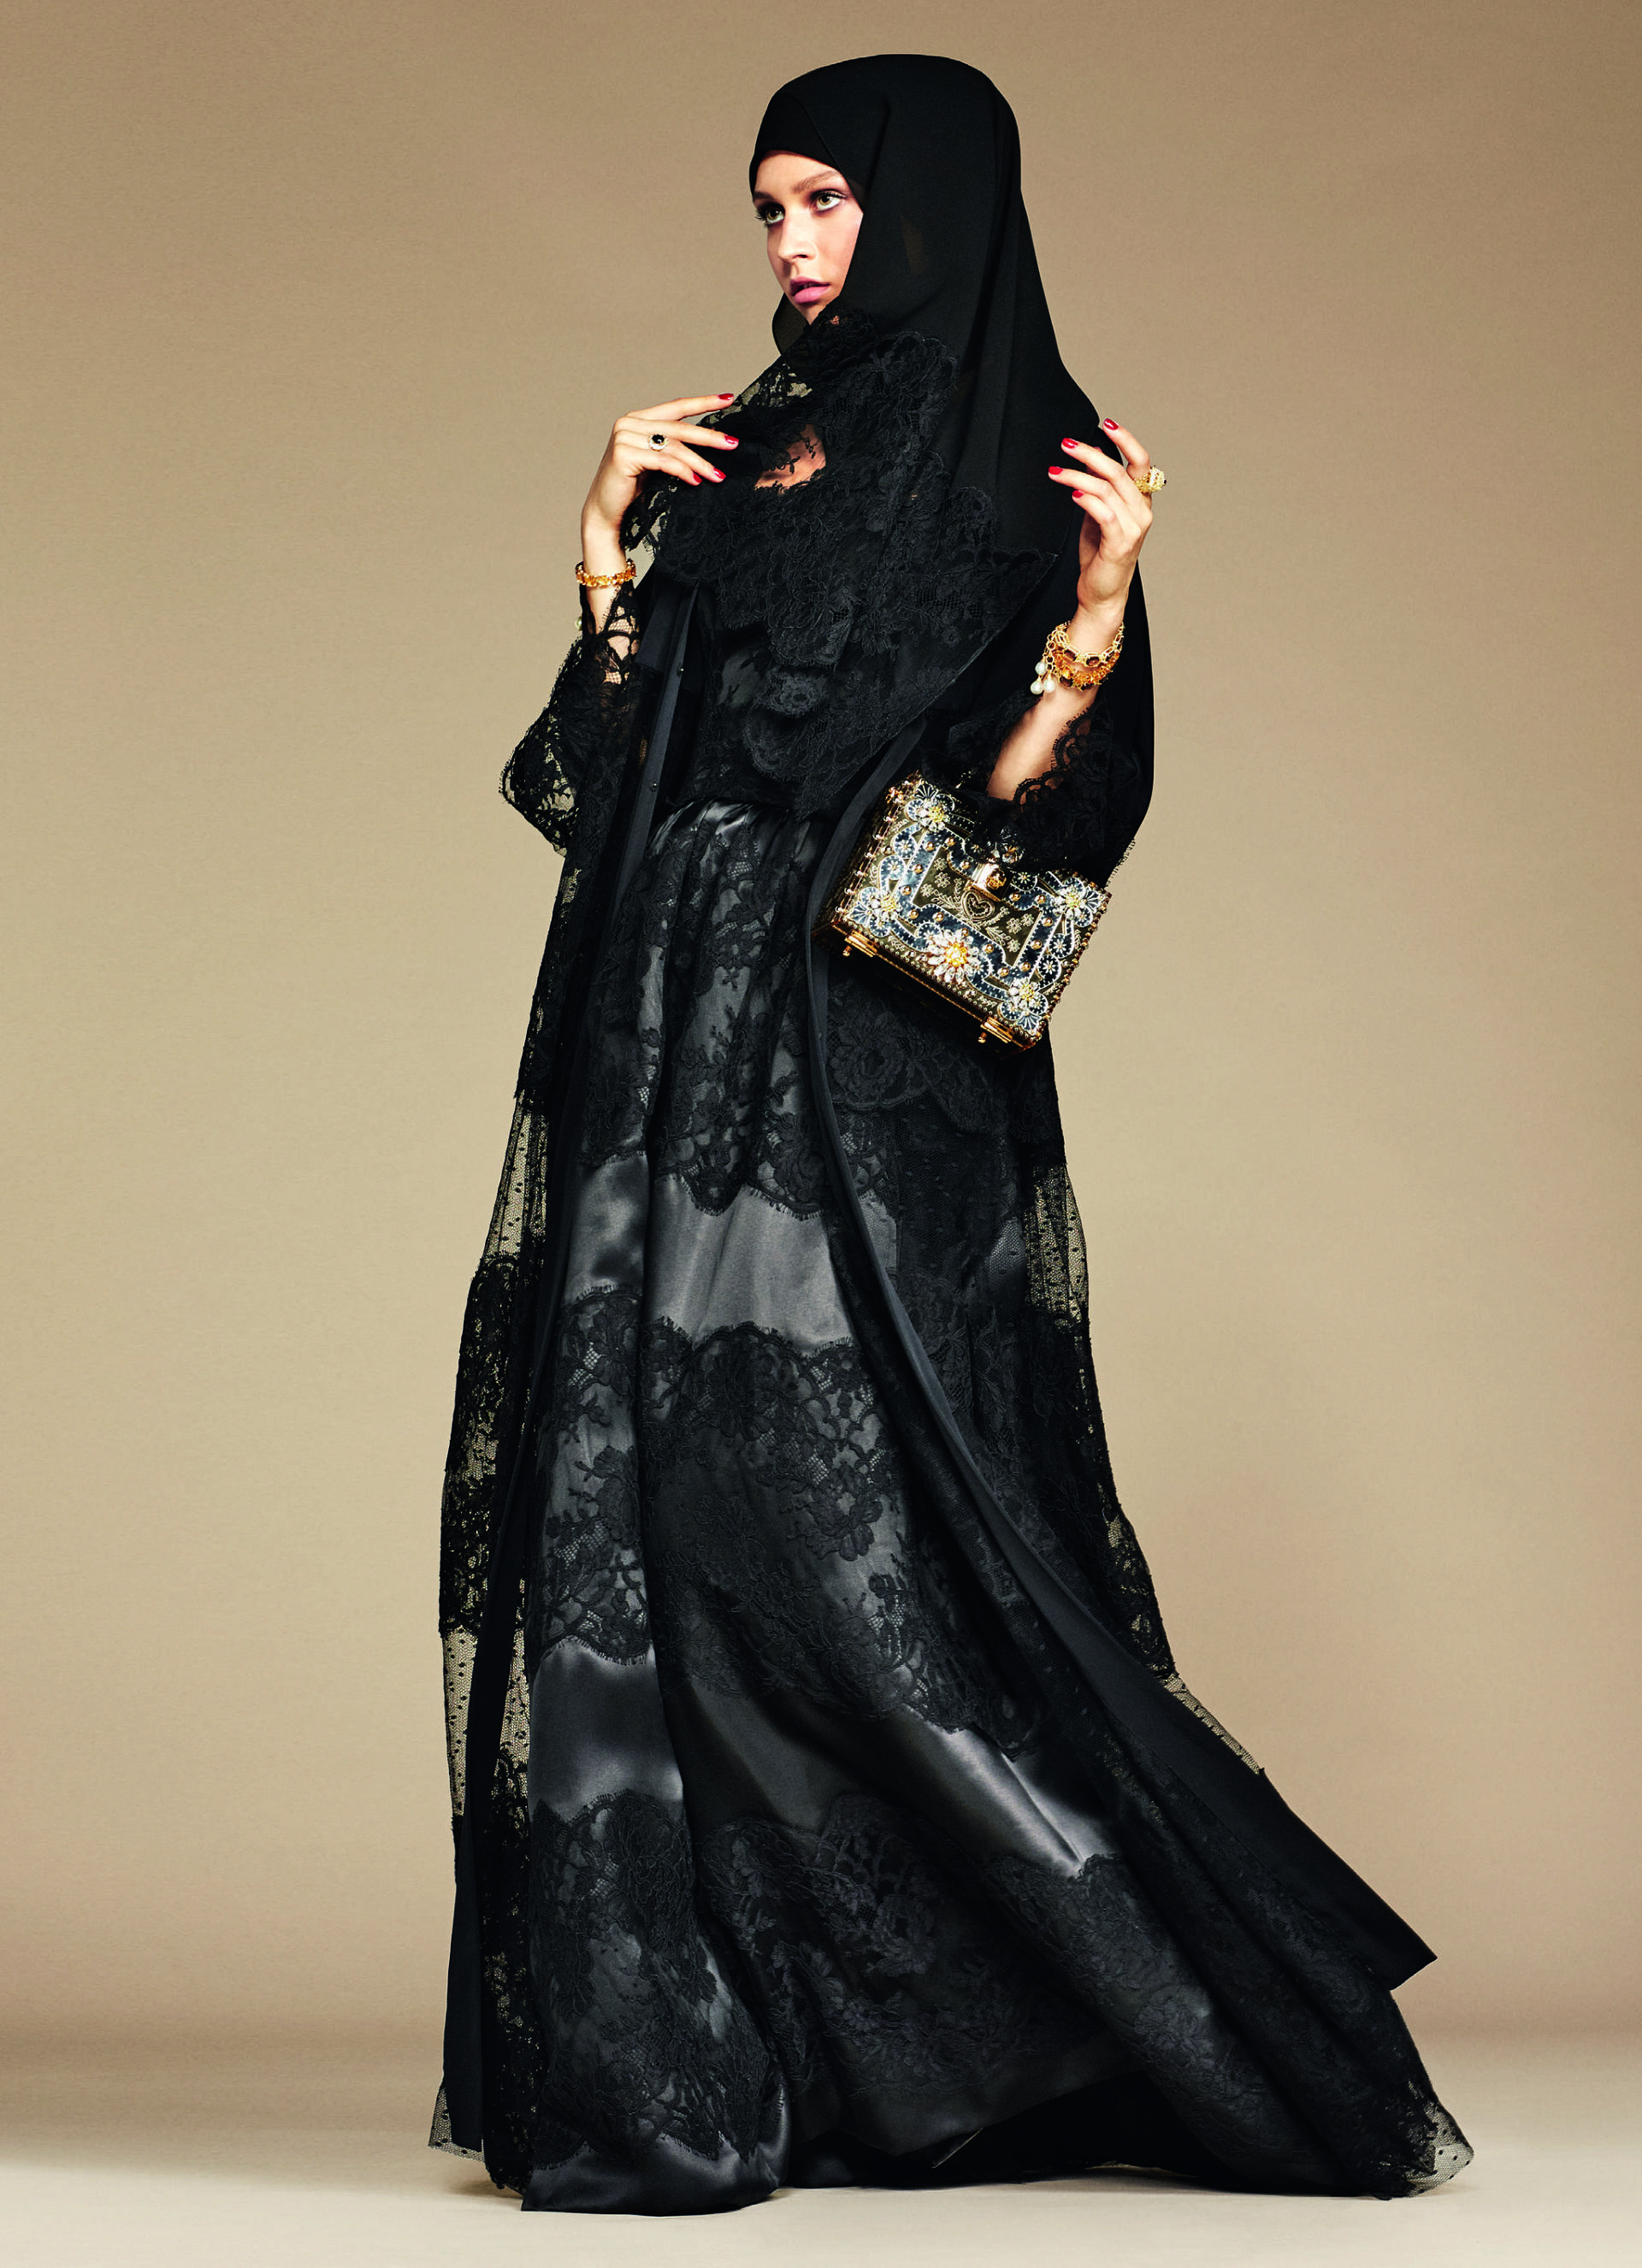 Over_Exposed_Dolce-Gabbana-Hijab-Abaya-Collection8